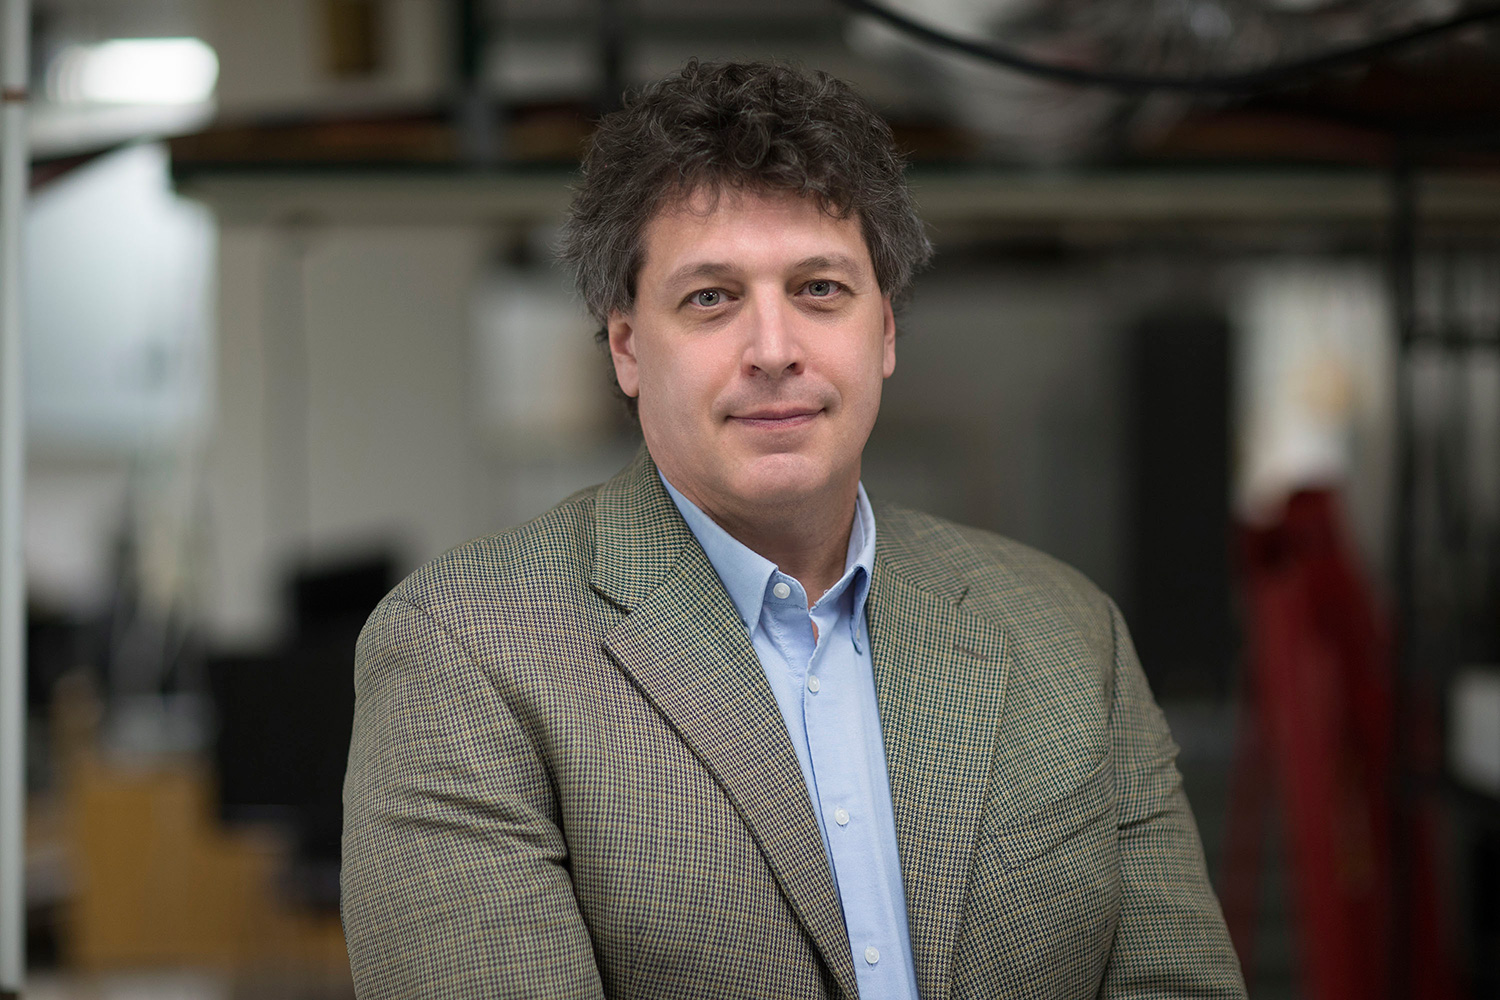 Brooks Pate, the William R. Kenan Professor of Chemistry, developed the technology, called Fast Fourier Molecular Rotation Spectroscopy.